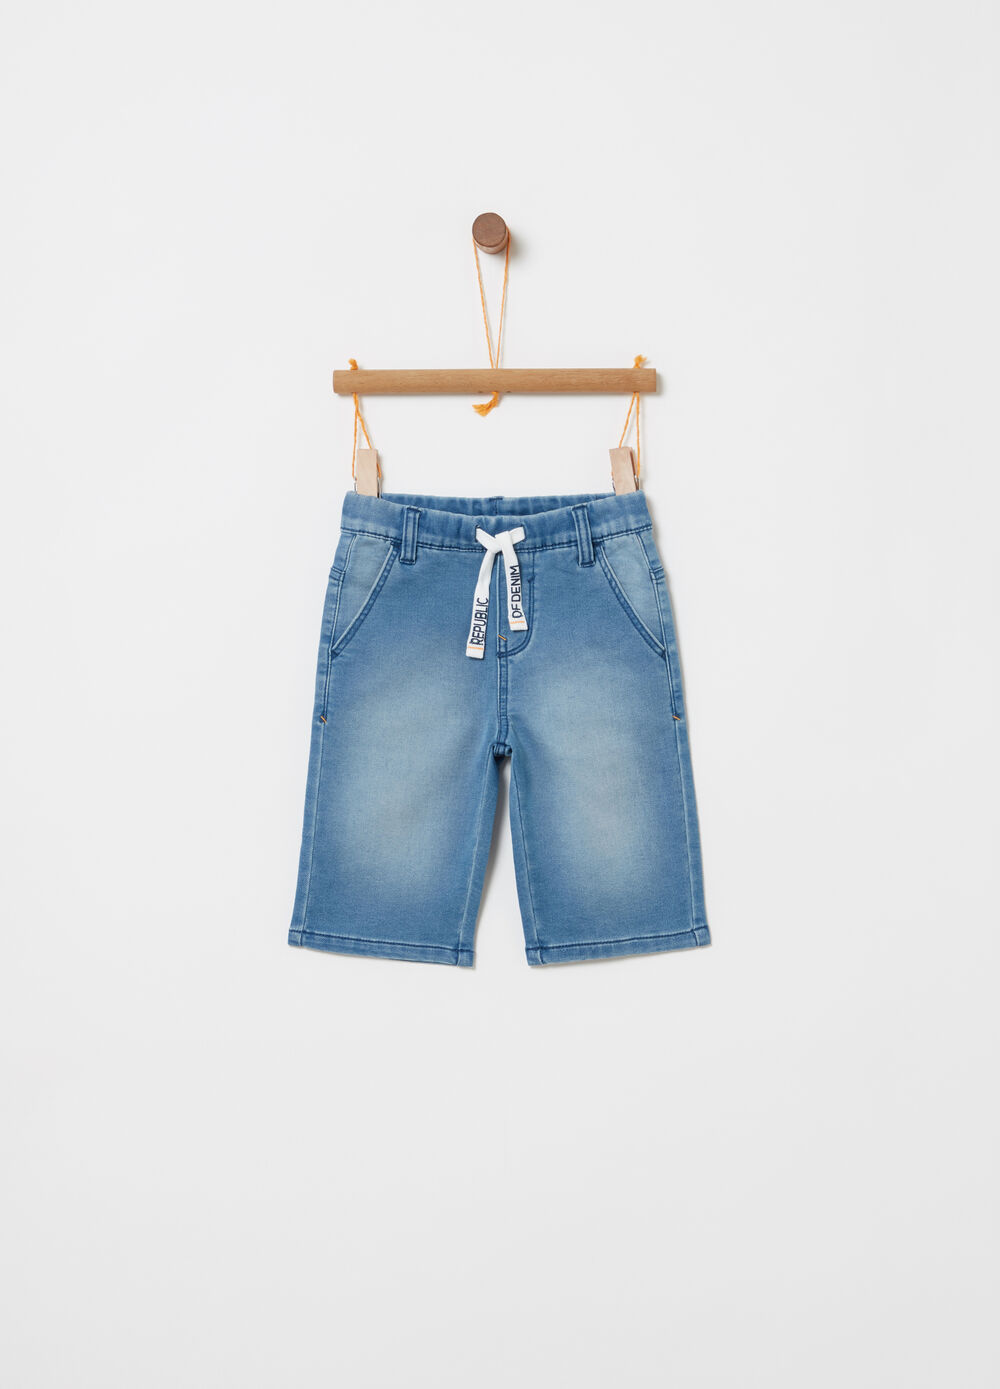 Denim shorts with functional pockets